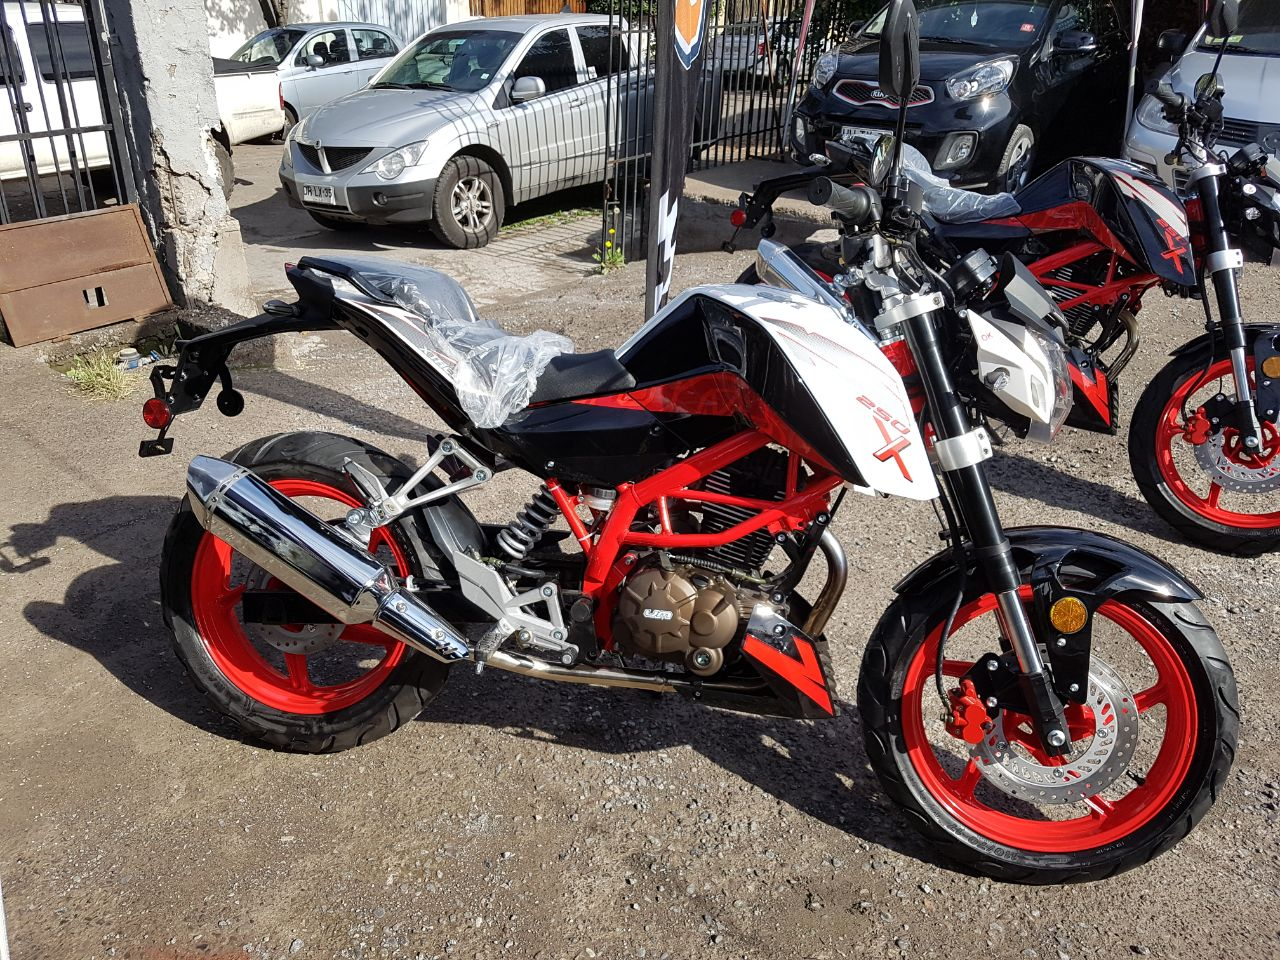 Um Xtreet 250x Is A Chinese Copy Of The Ktm Duke 200